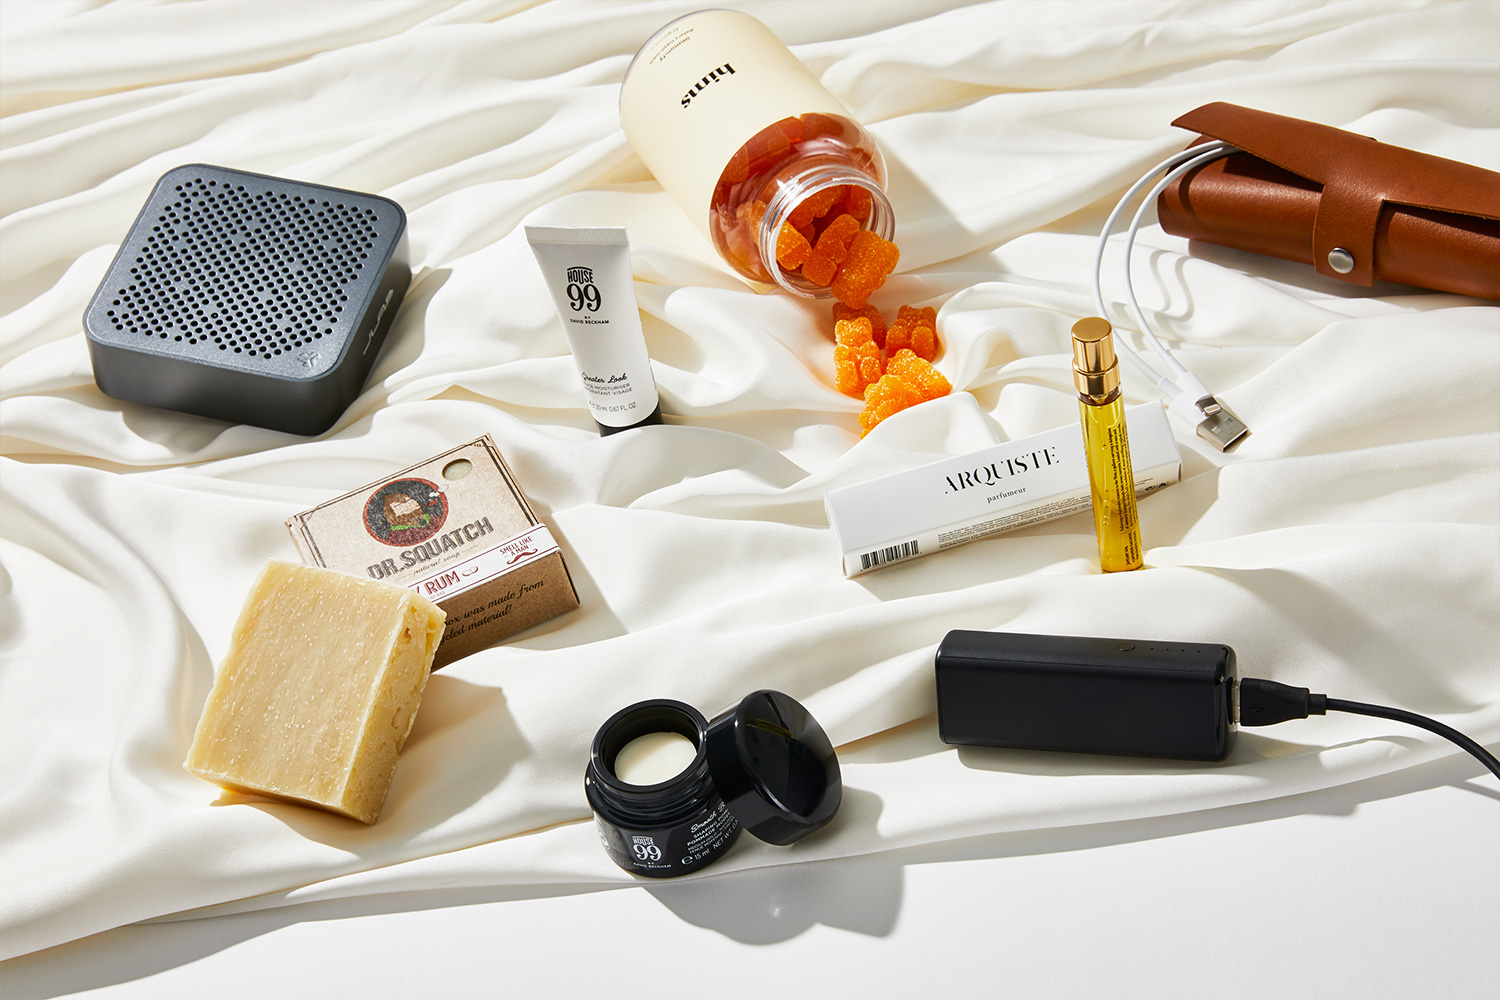 GQ-Best-Stuff-Box-sample-monthly-products.jpg